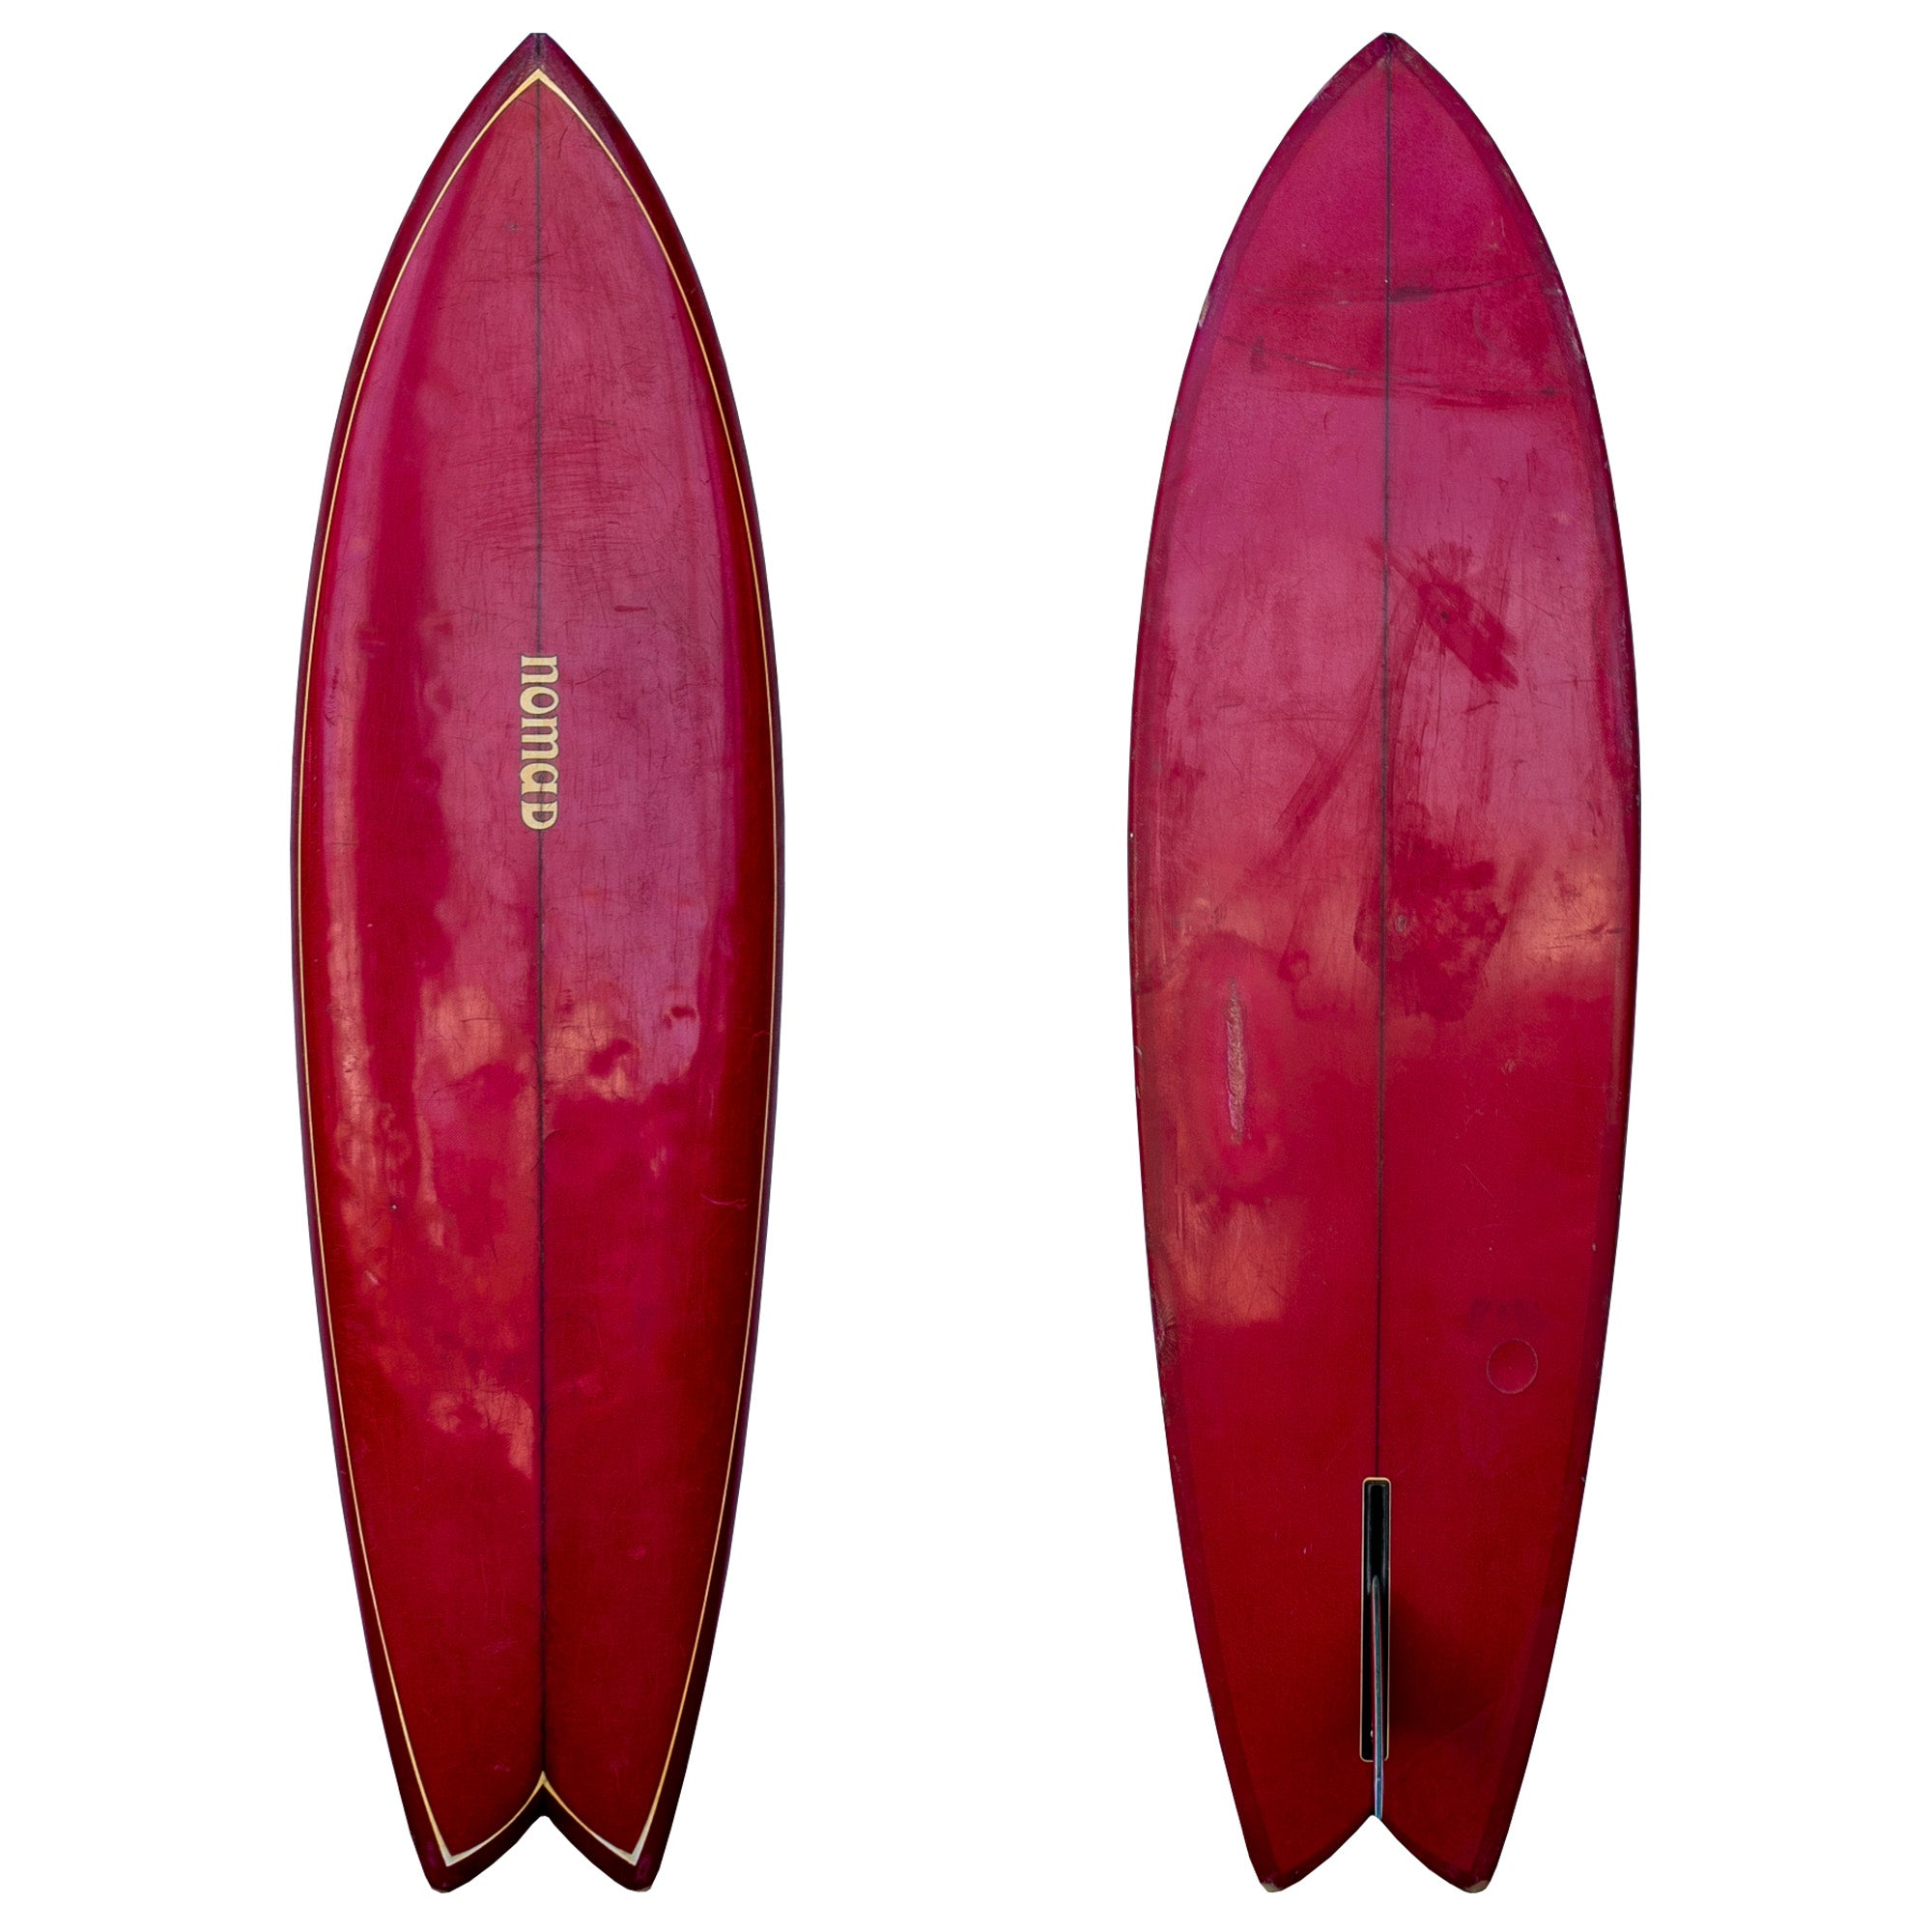 Nomad 5'11 Used Collector Surfboard